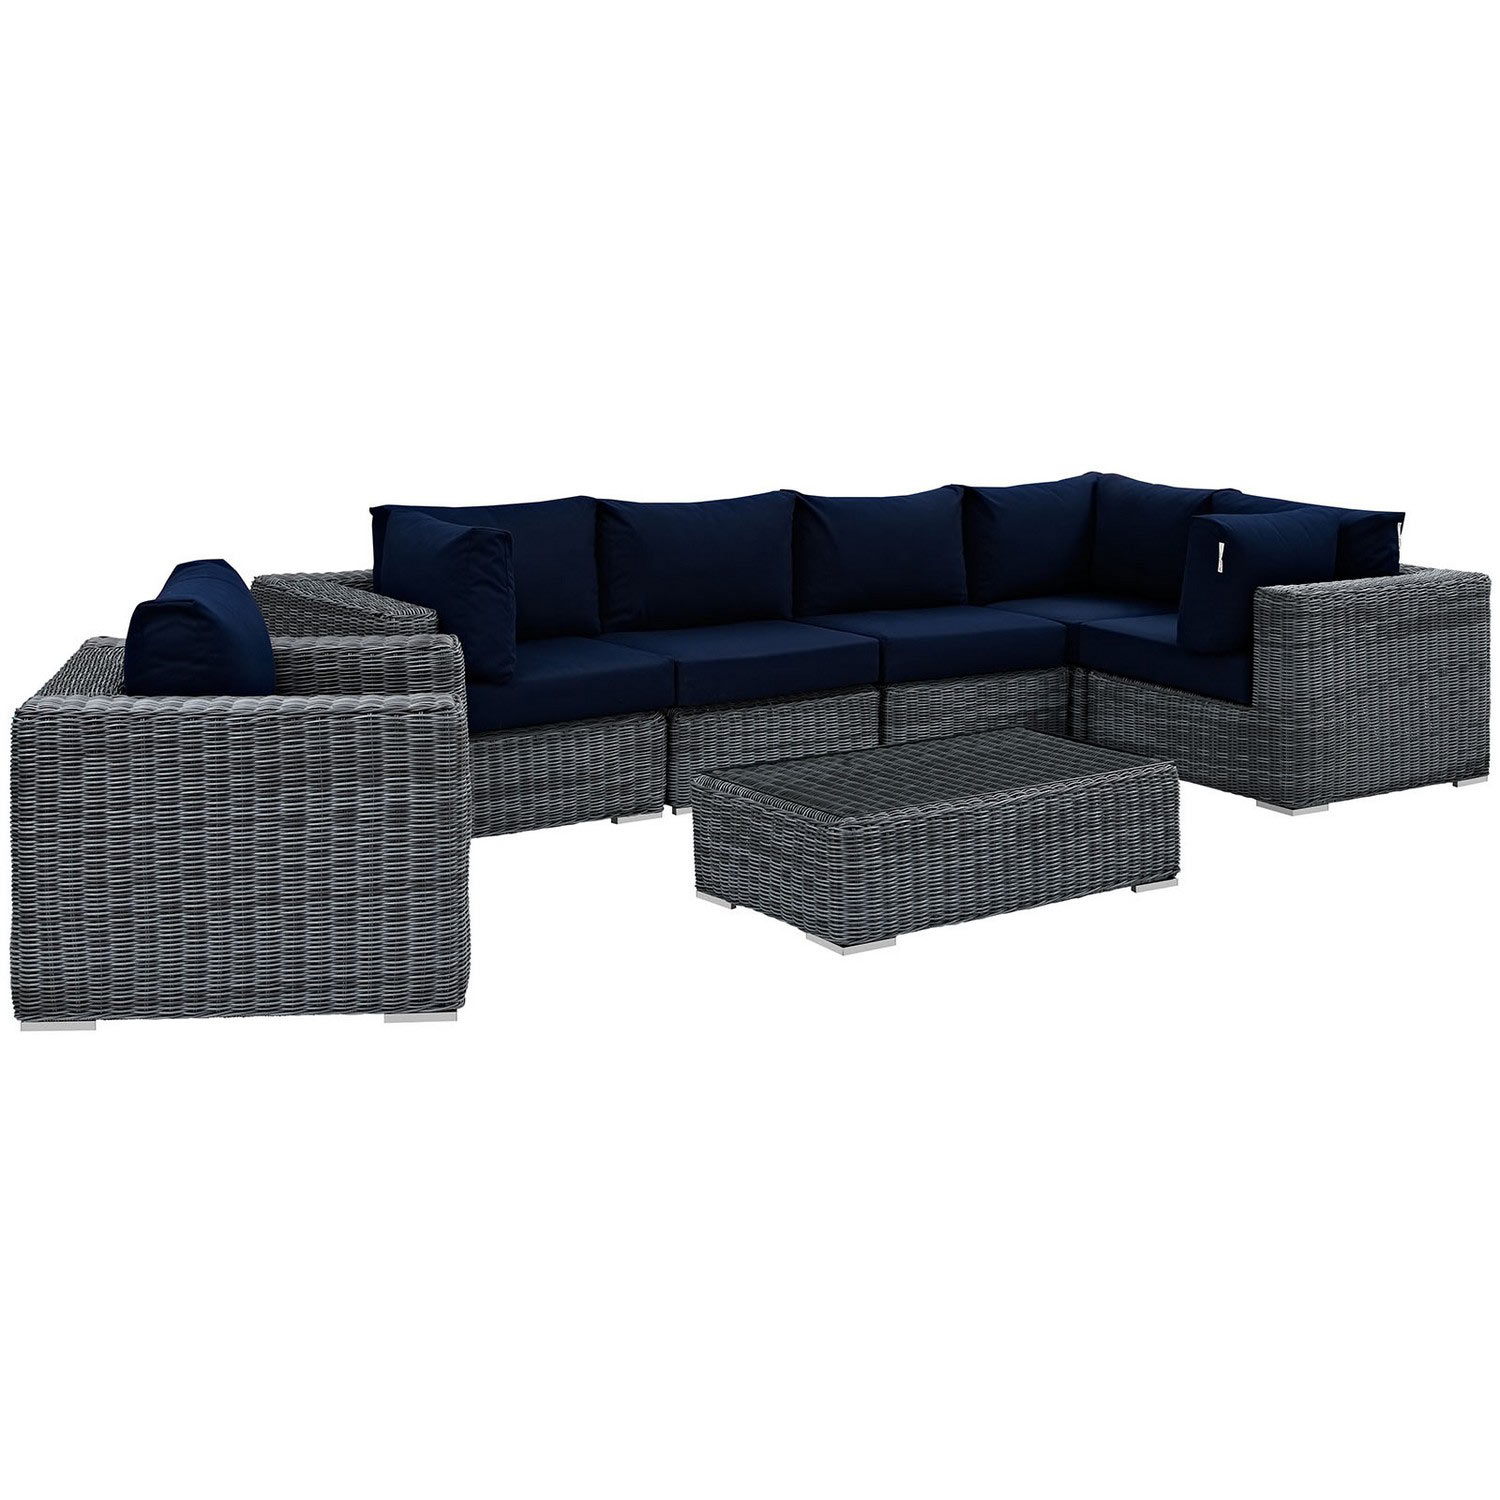 Modway Summon 7 Piece Outdoor Patio Sunbrella Sectional Set - Canvas Navy